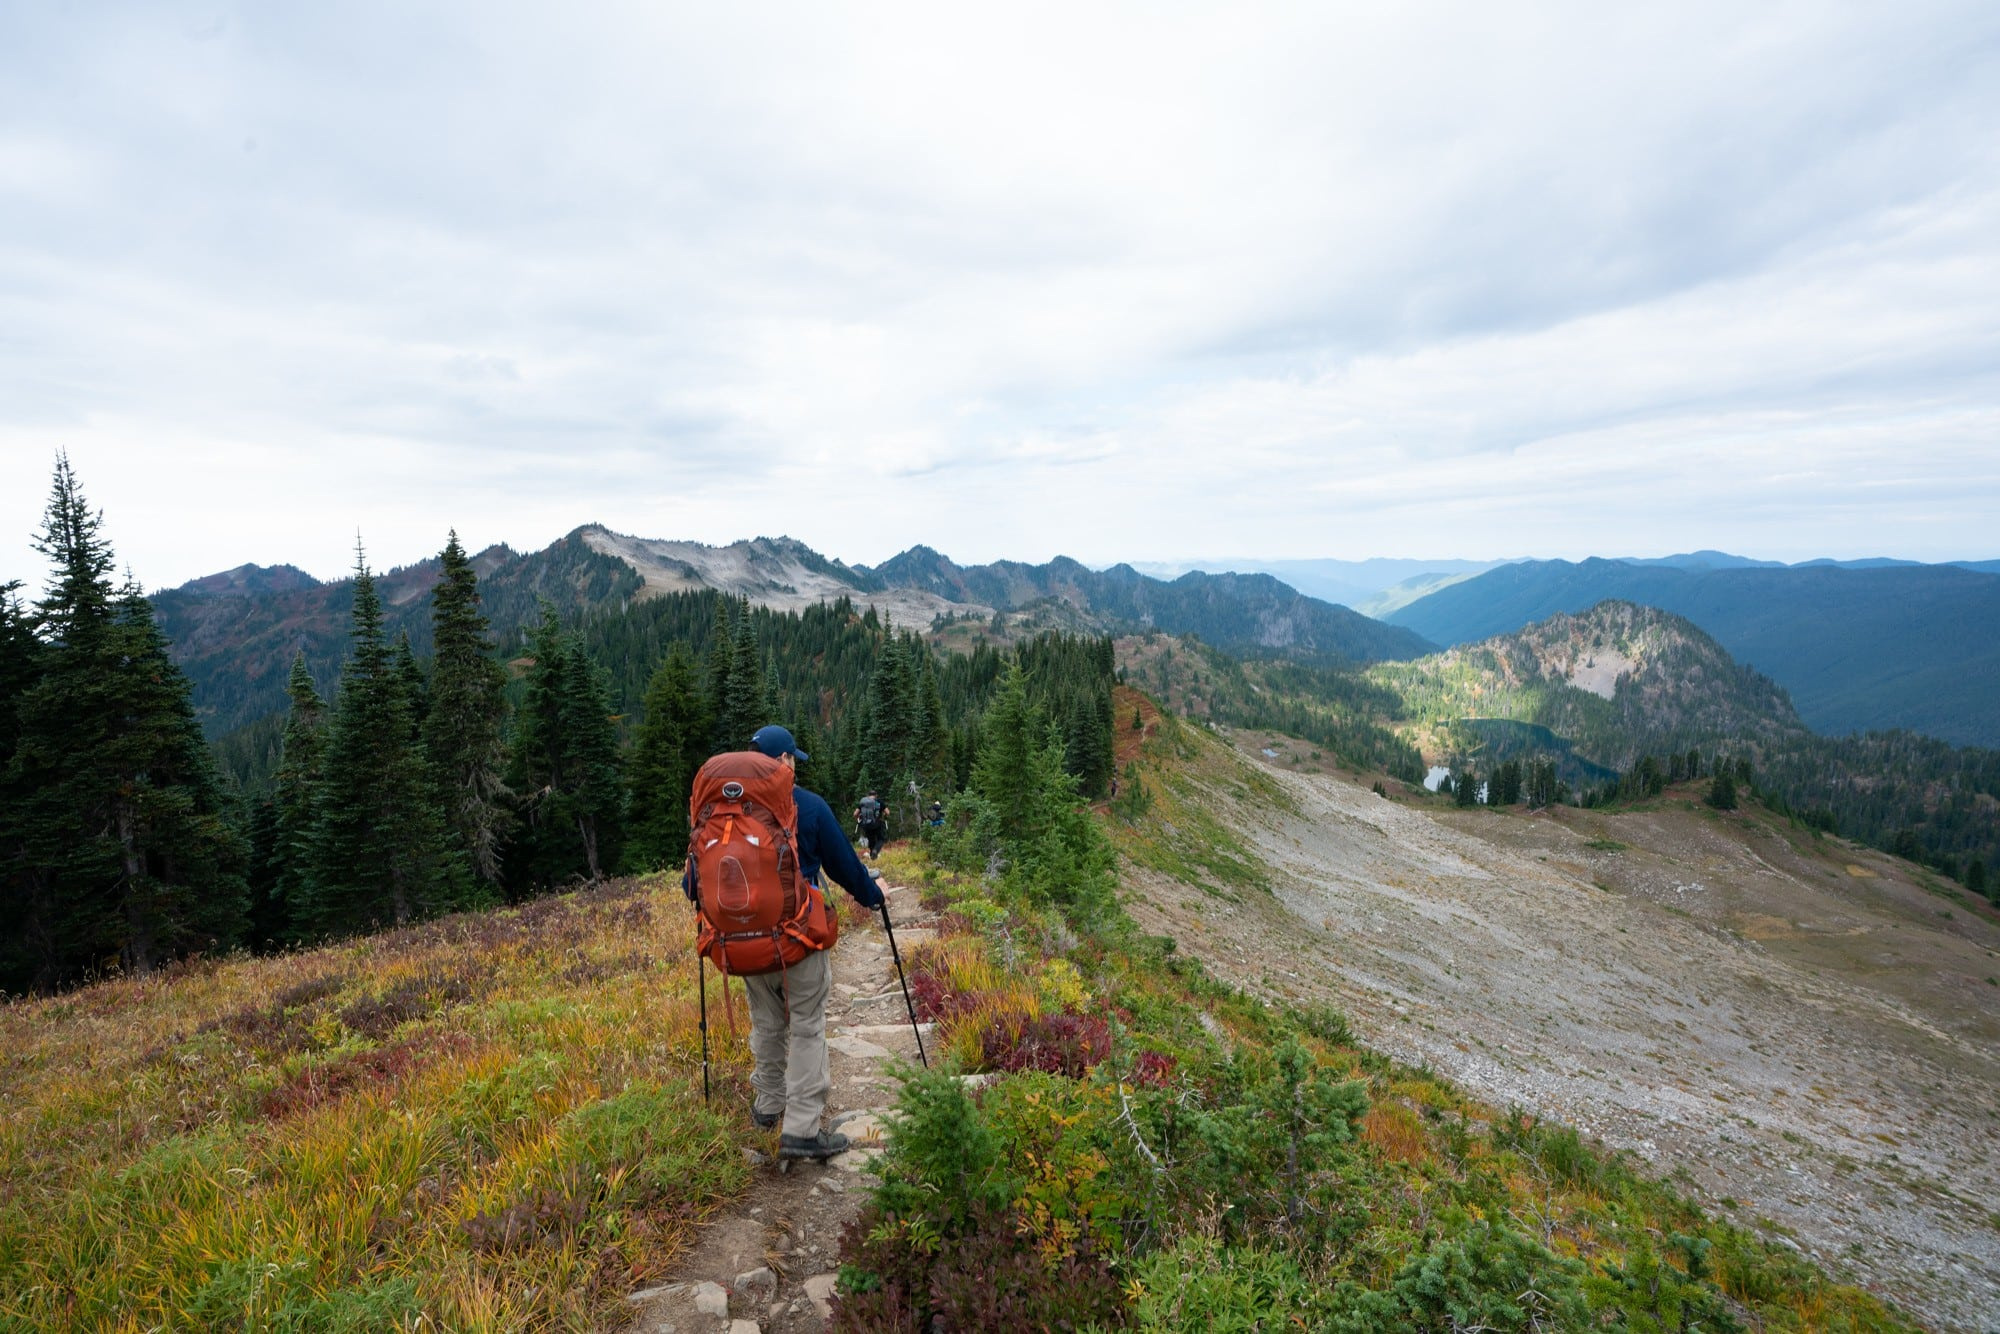 Backpacking the High Divide Trail in Olympic National Park with REI Adventures